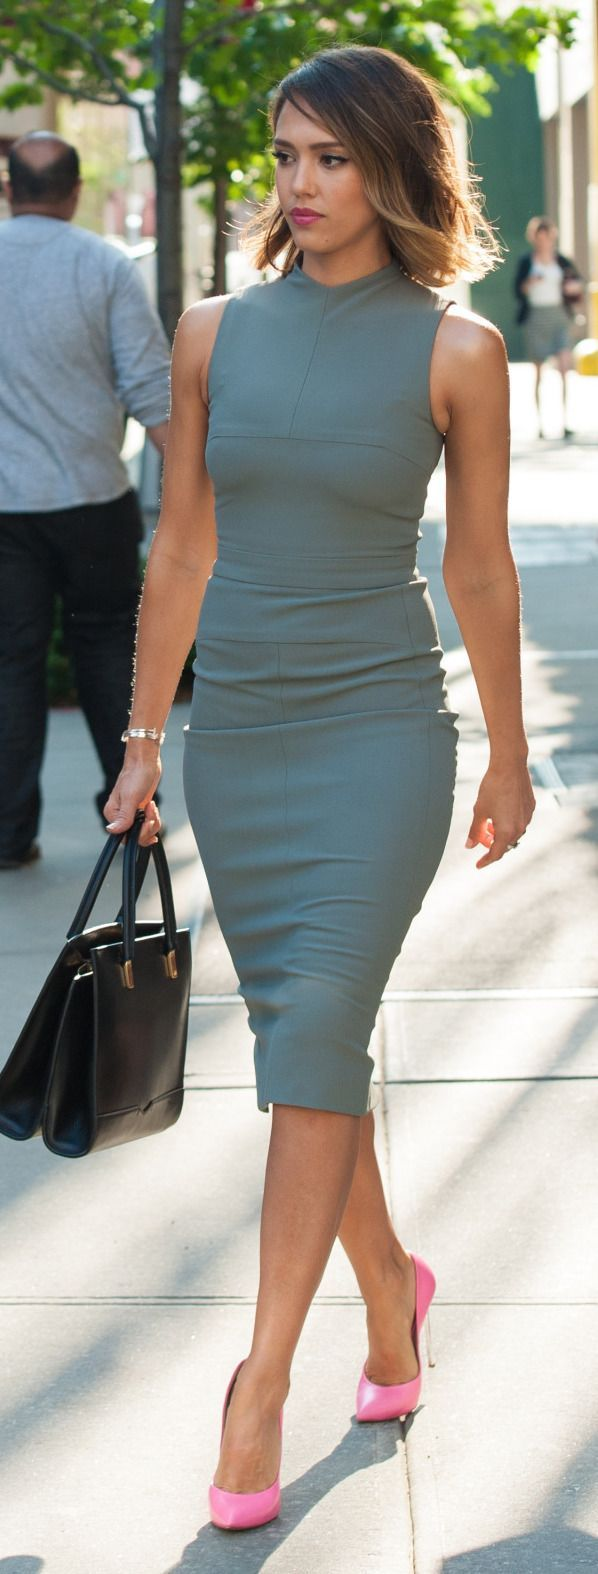 Jessica Alba. Celebrity look | Flattering blue grey dress, ombre bob and pink pumps | Latest fashion trends